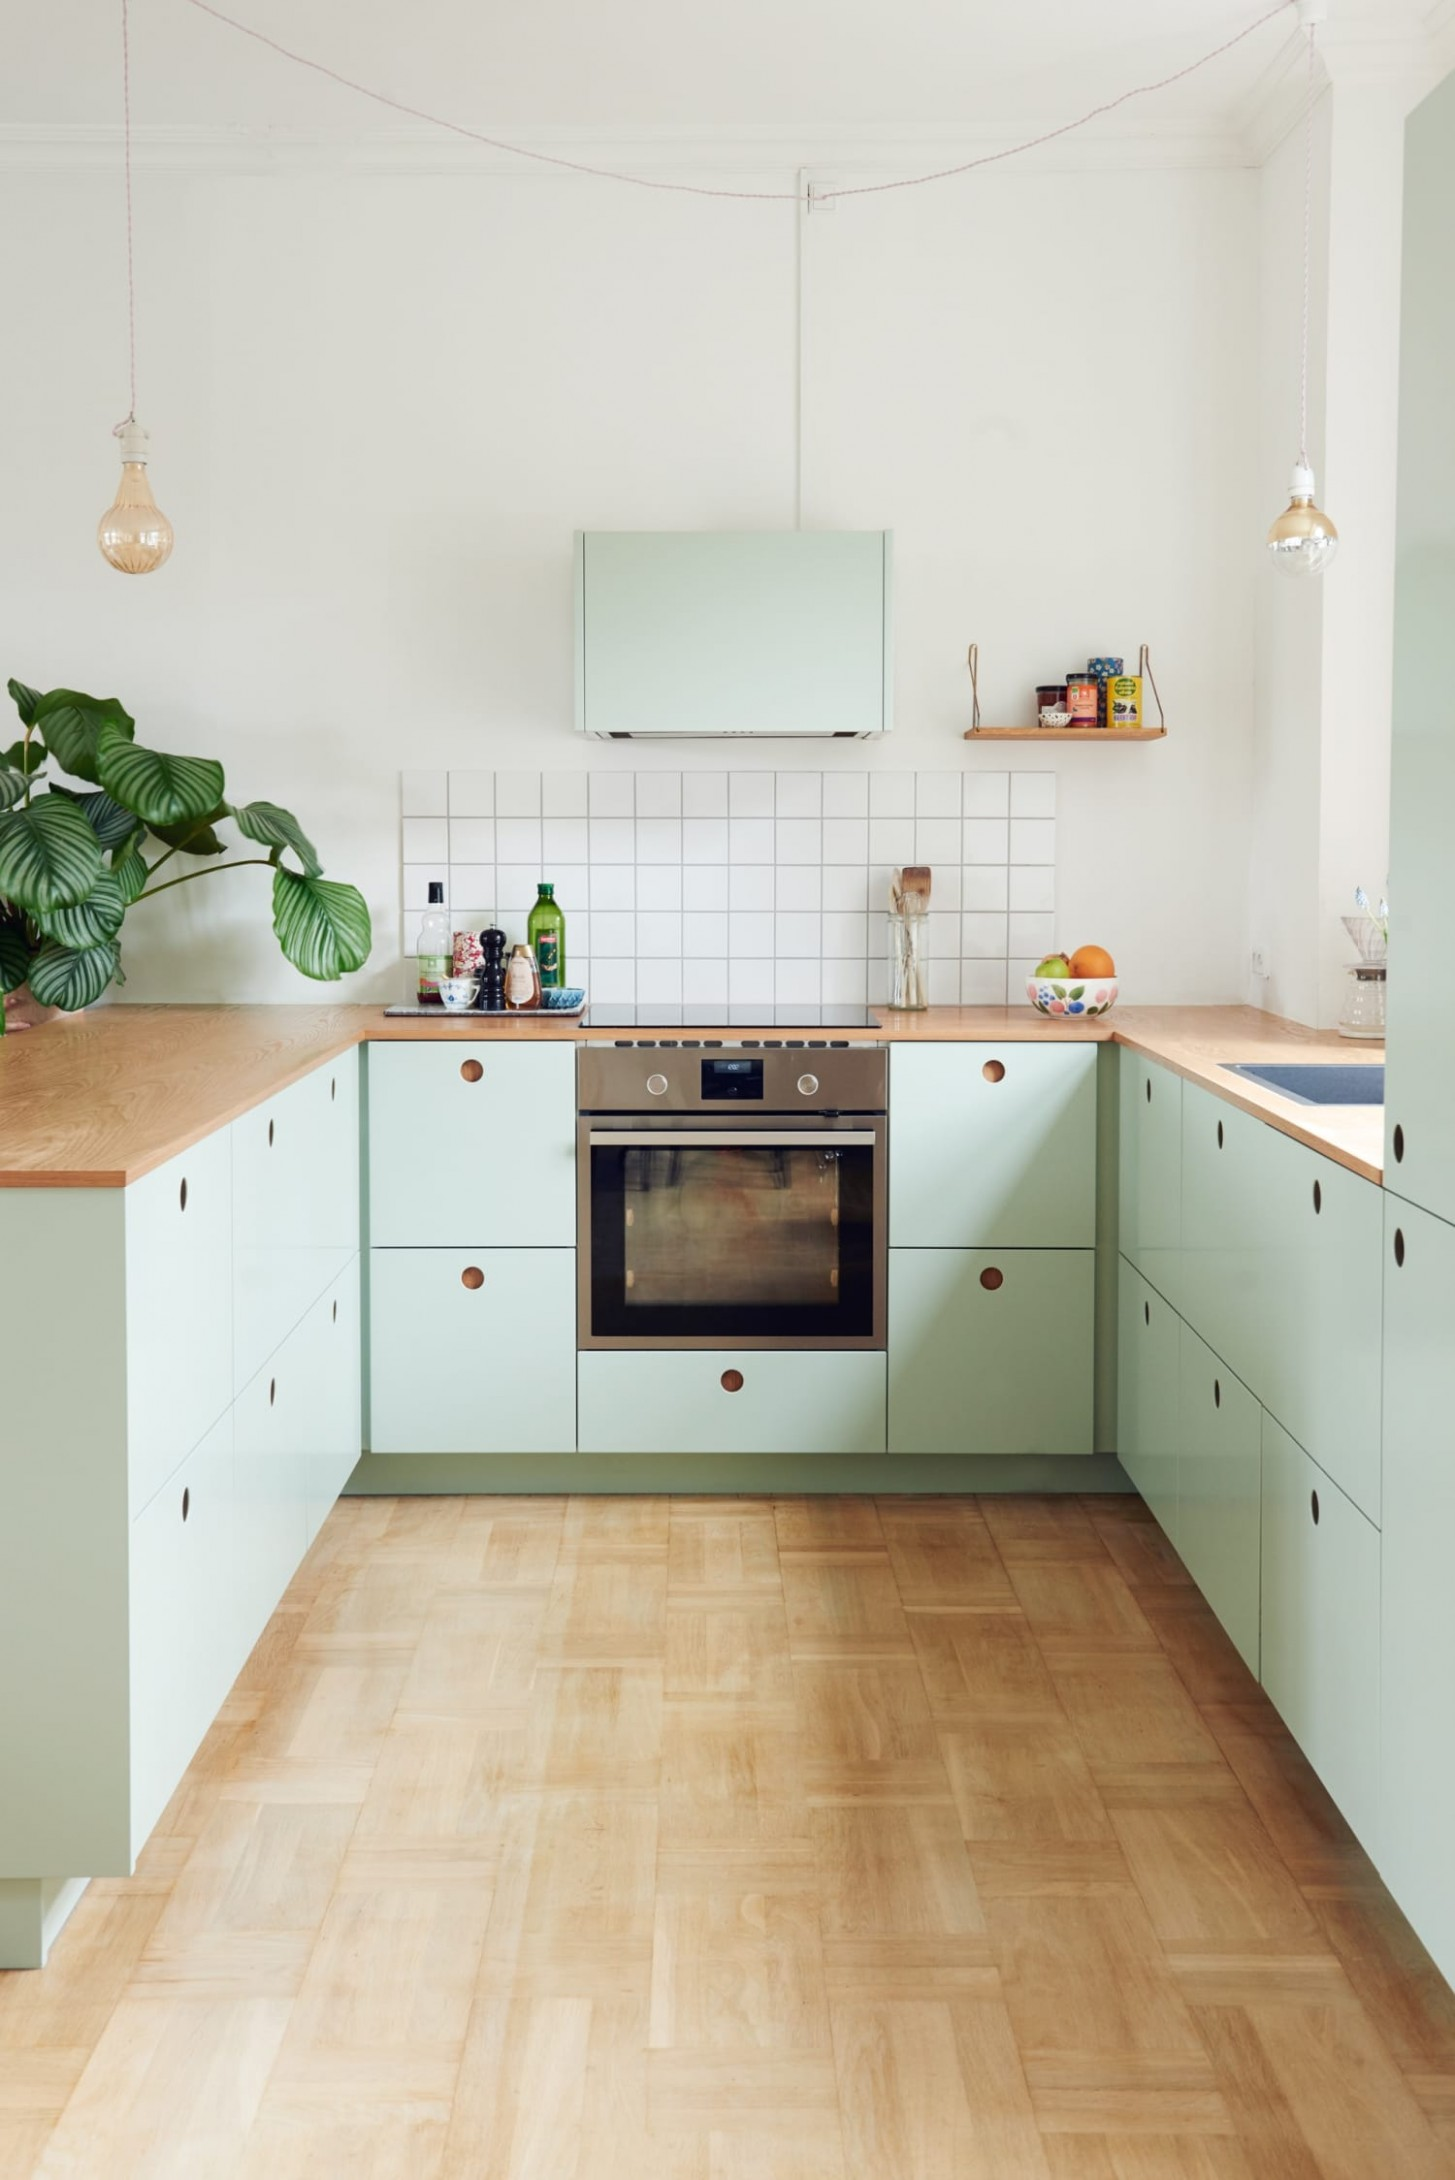 Kitchens Without Upper Cabinets: Should You Go Without  - Kitchen Design Without Cabinets